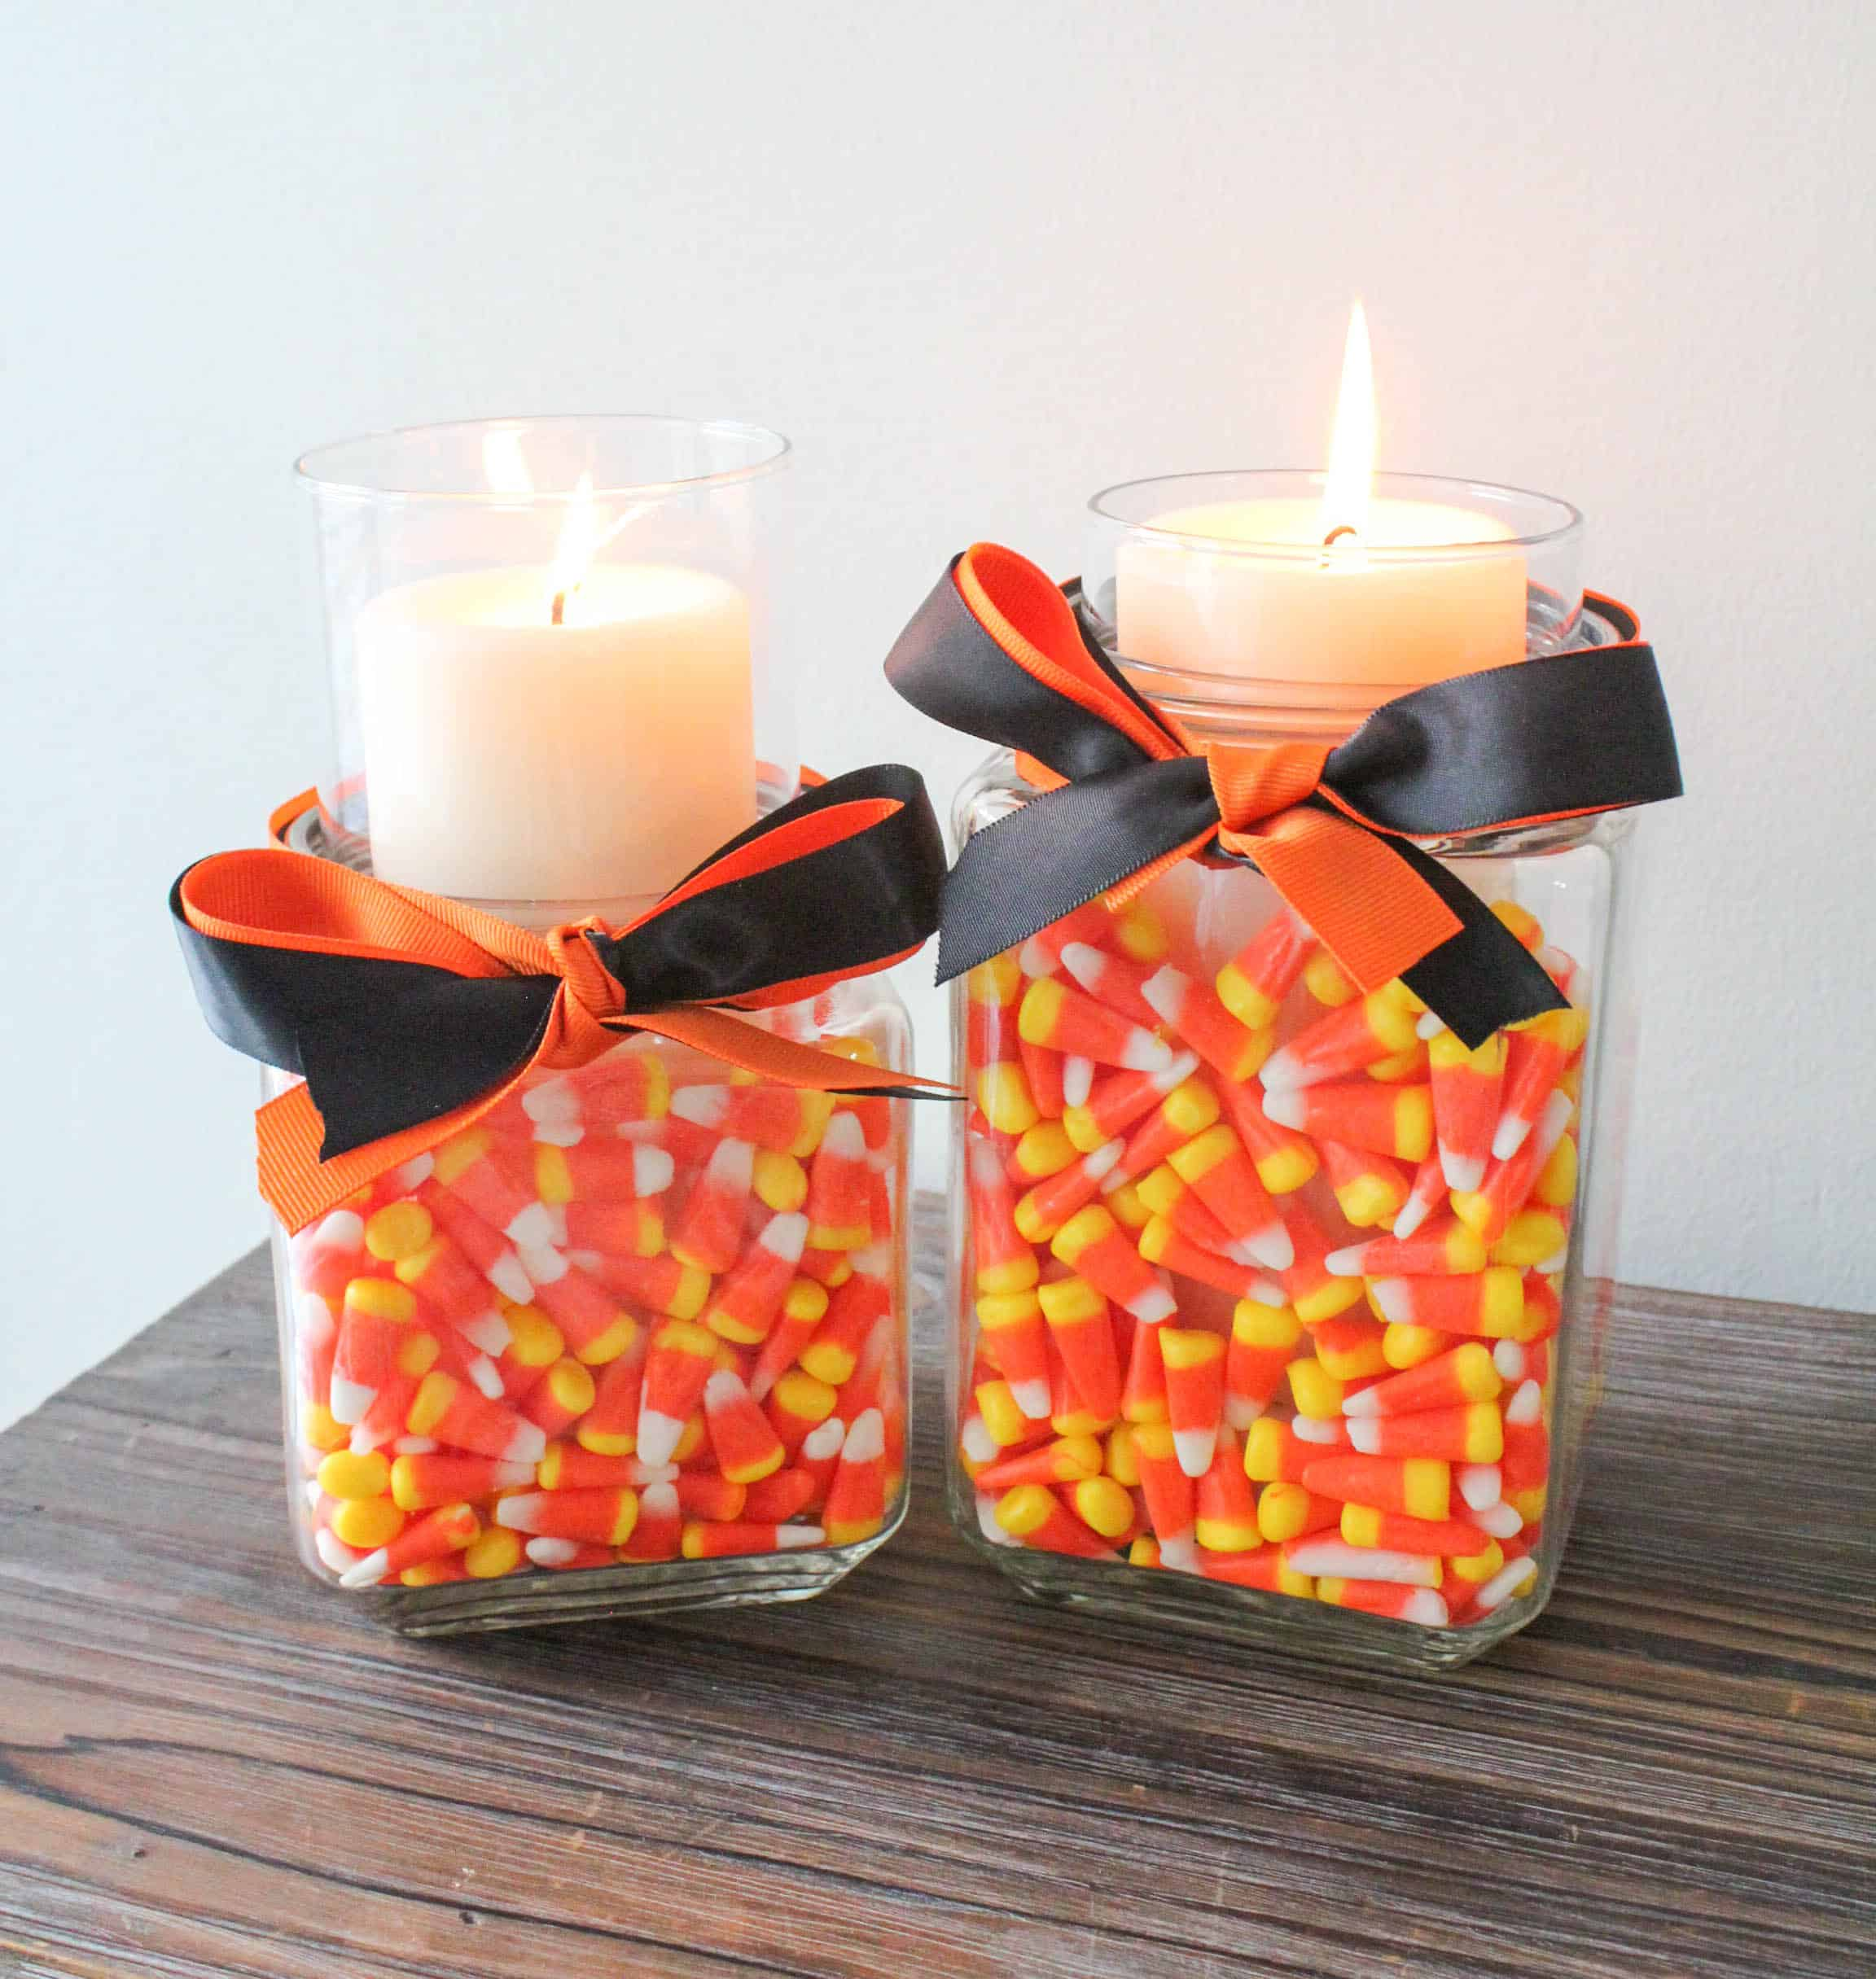 Candle Holder Store Cheaper Than Retail Price Buy Clothing Accessories And Lifestyle Products For Women Men